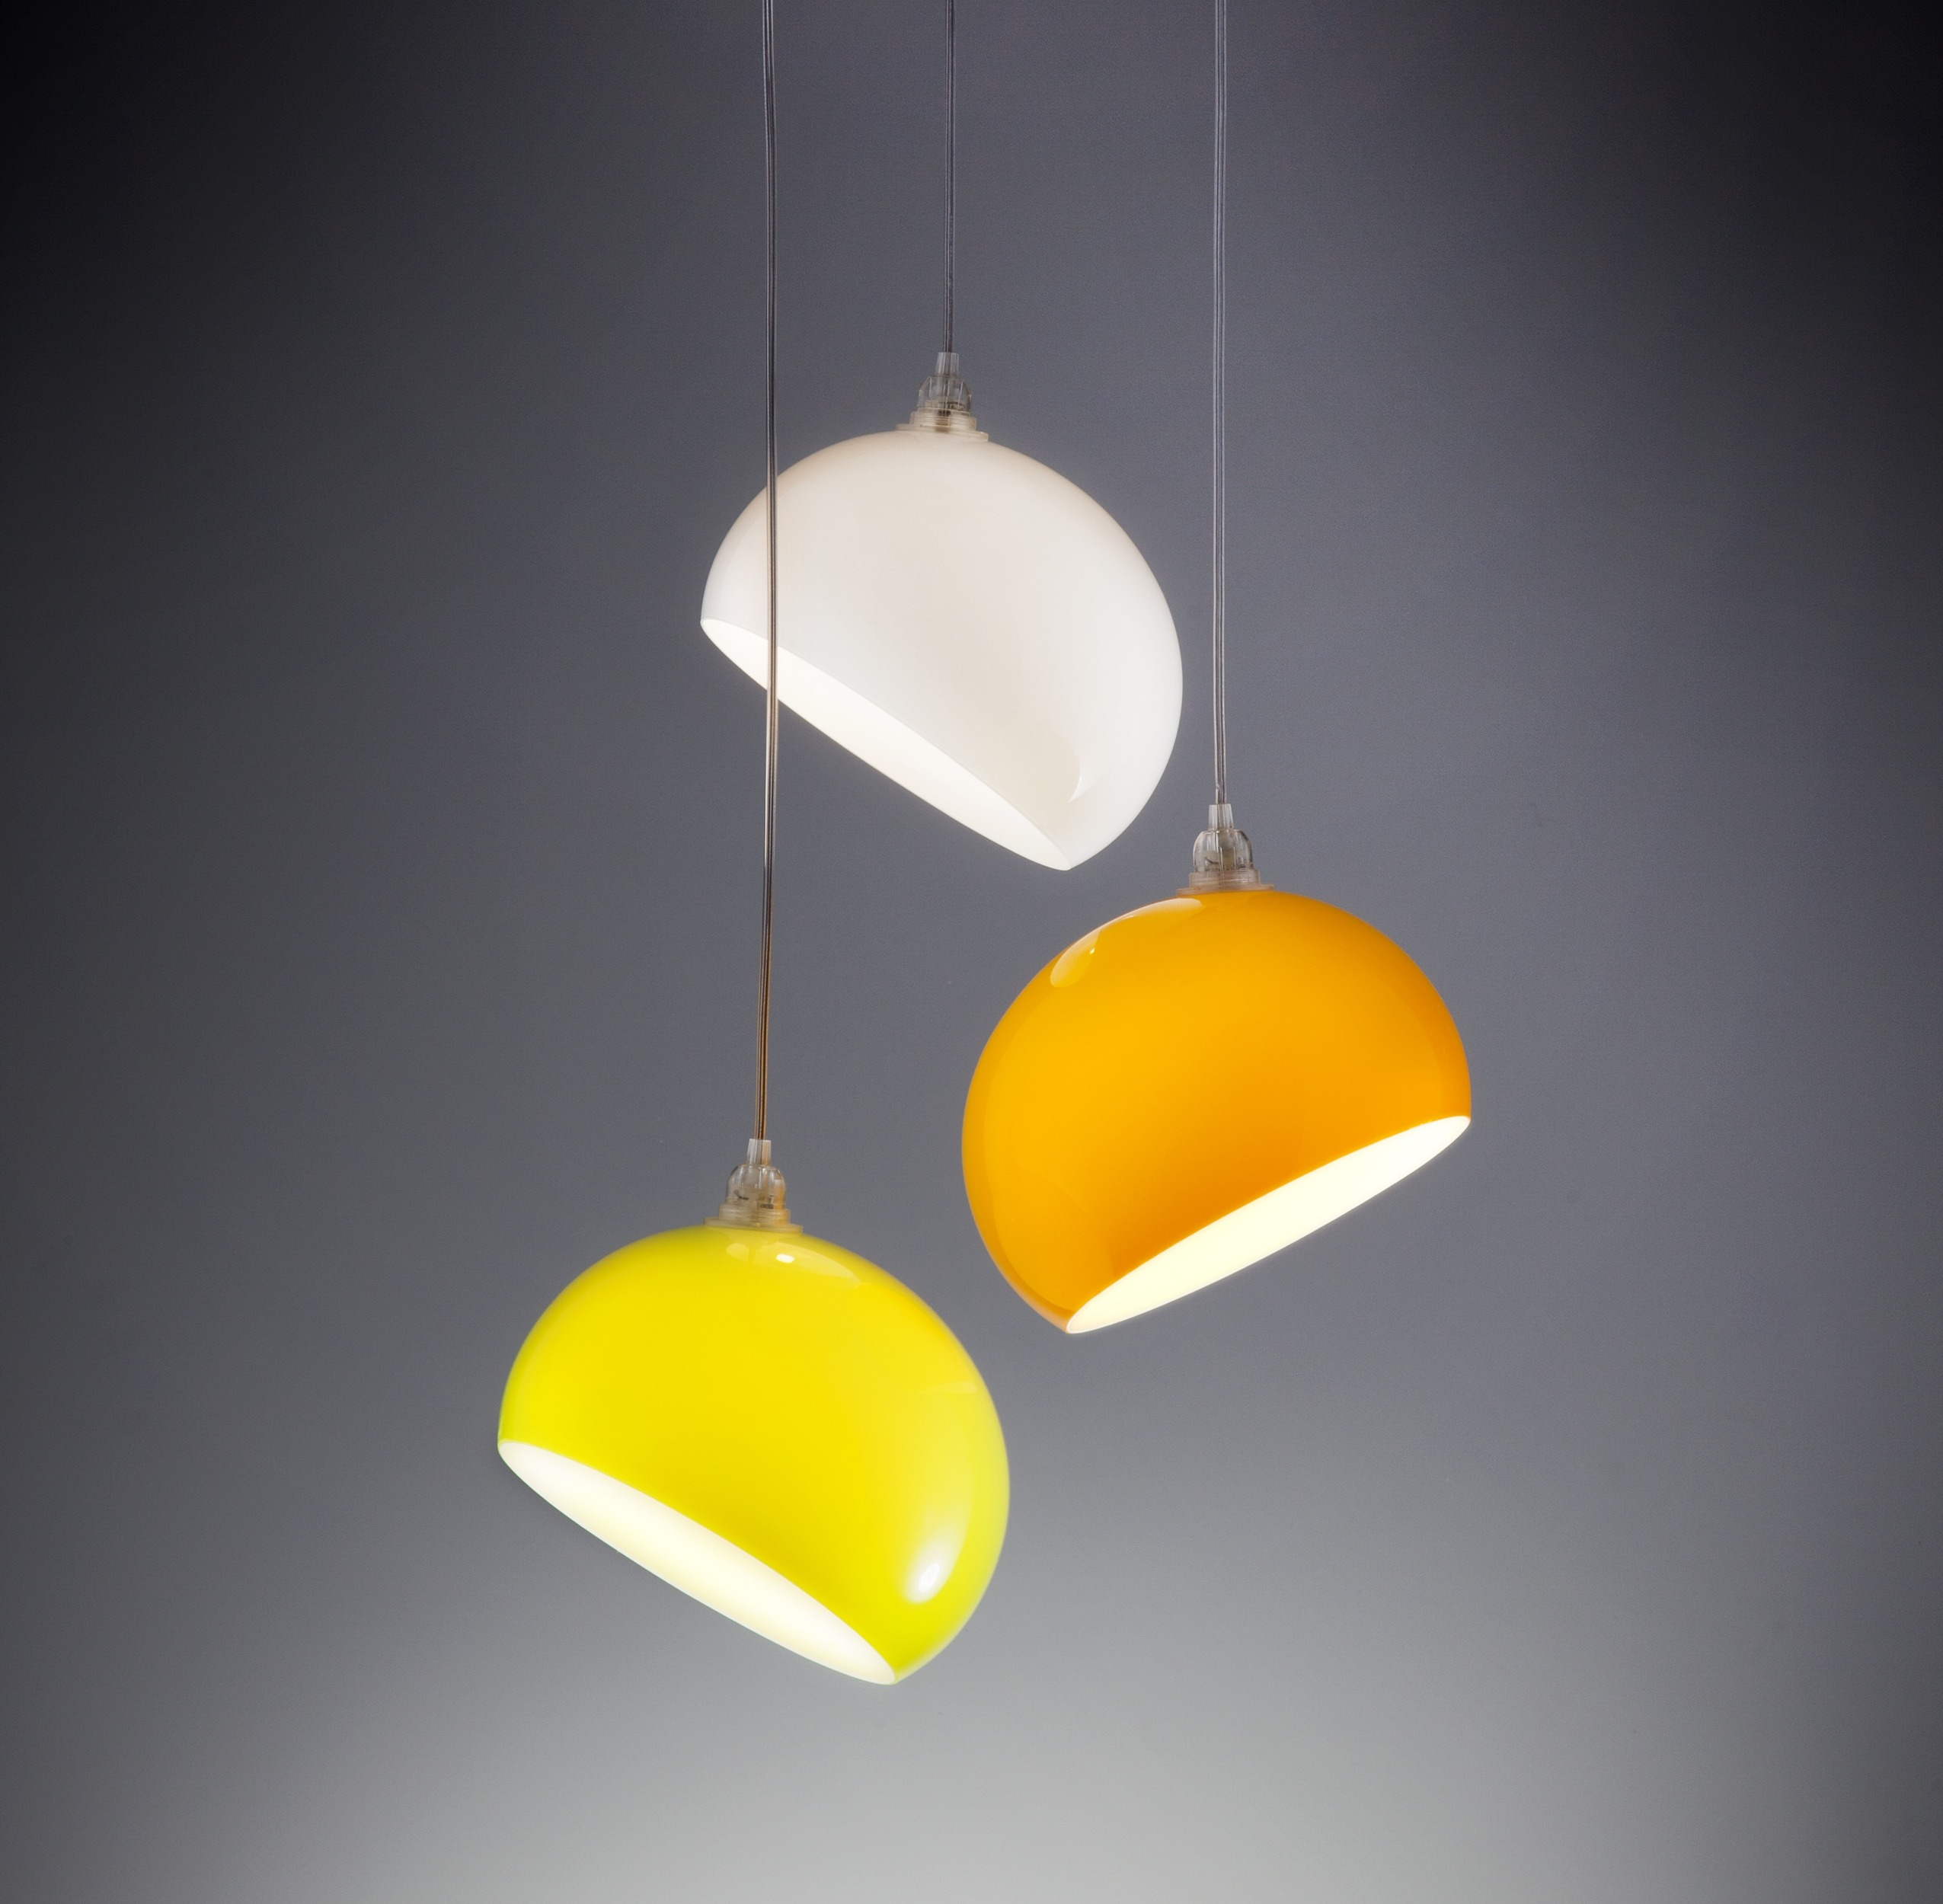 Lampadario di Design in Plexiglass